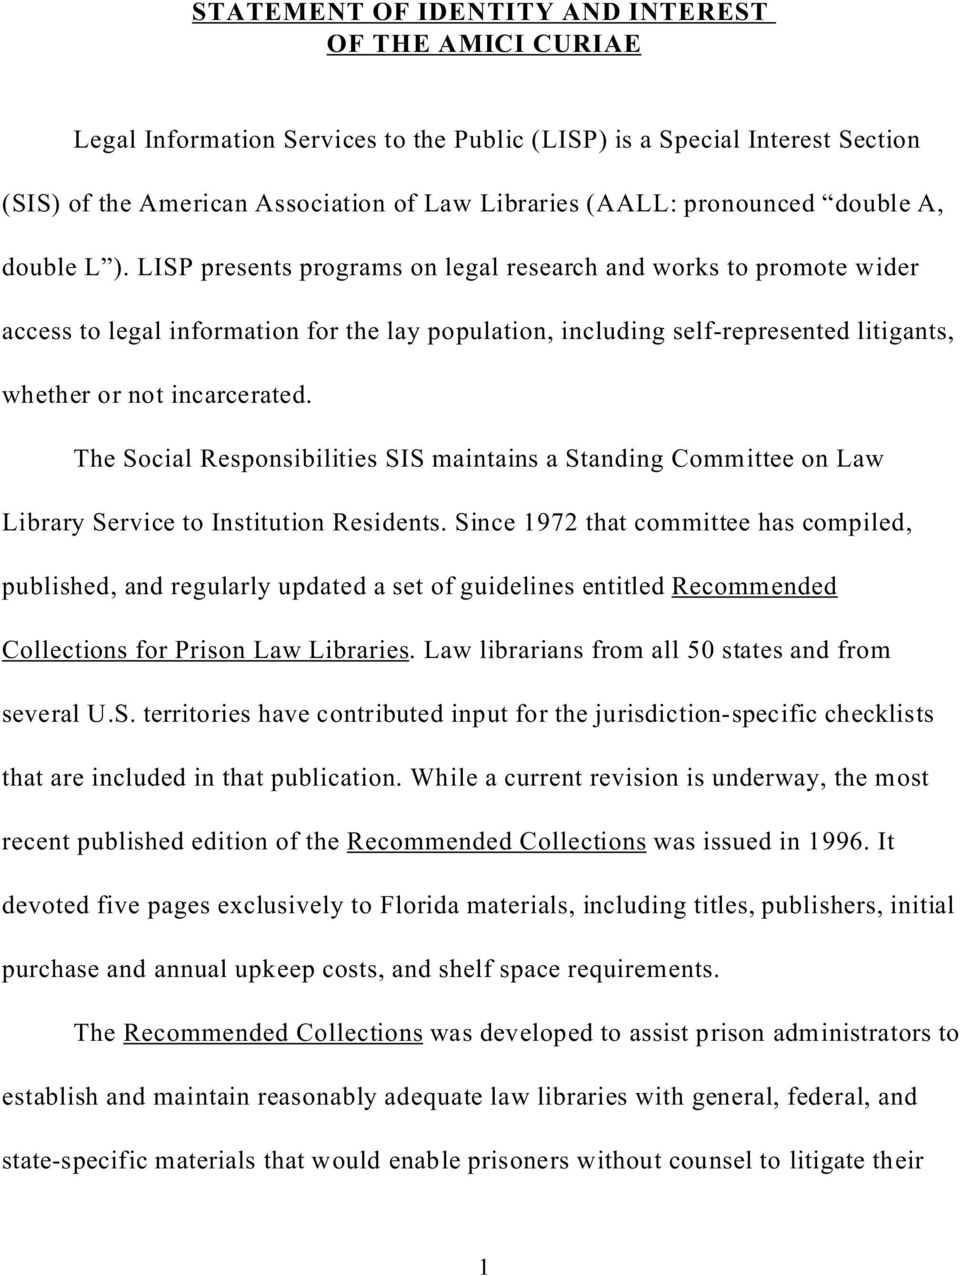 LISP presents programs on legal research and works to promote wider access to legal information for the lay population, including self-represented litigants, whether or not incarcerated.